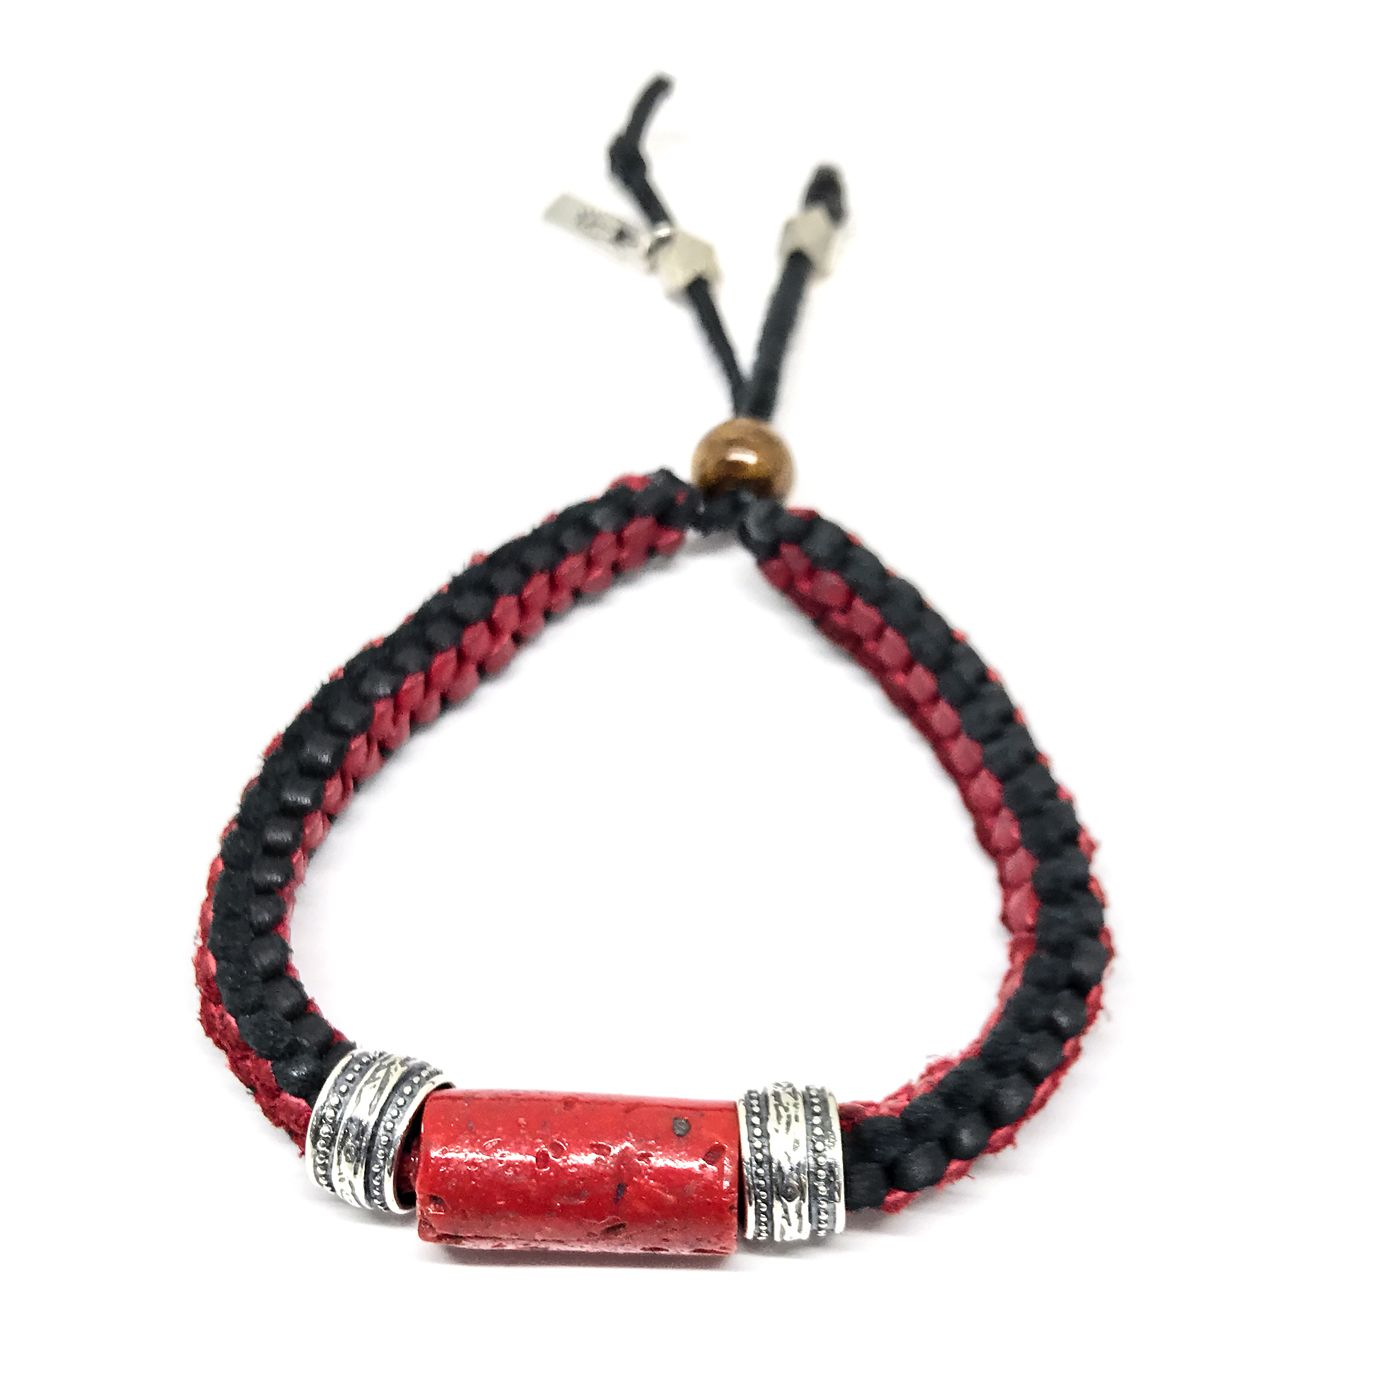 Limited edition coral u leather menus bracelet bracelets and beads